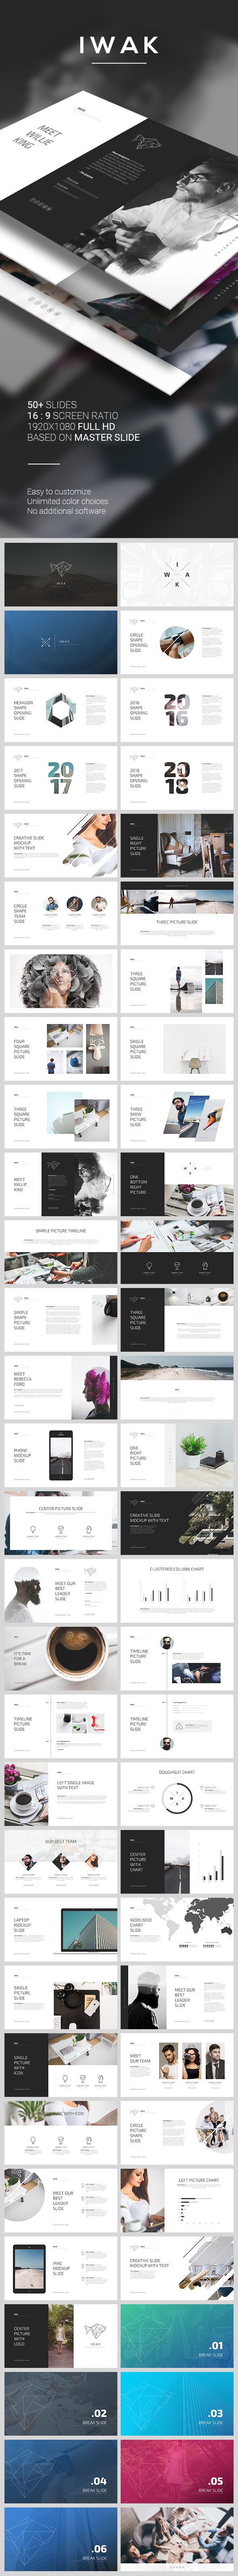 IWAK PowerPoint Template - PowerPoint Templates Presentation Templates